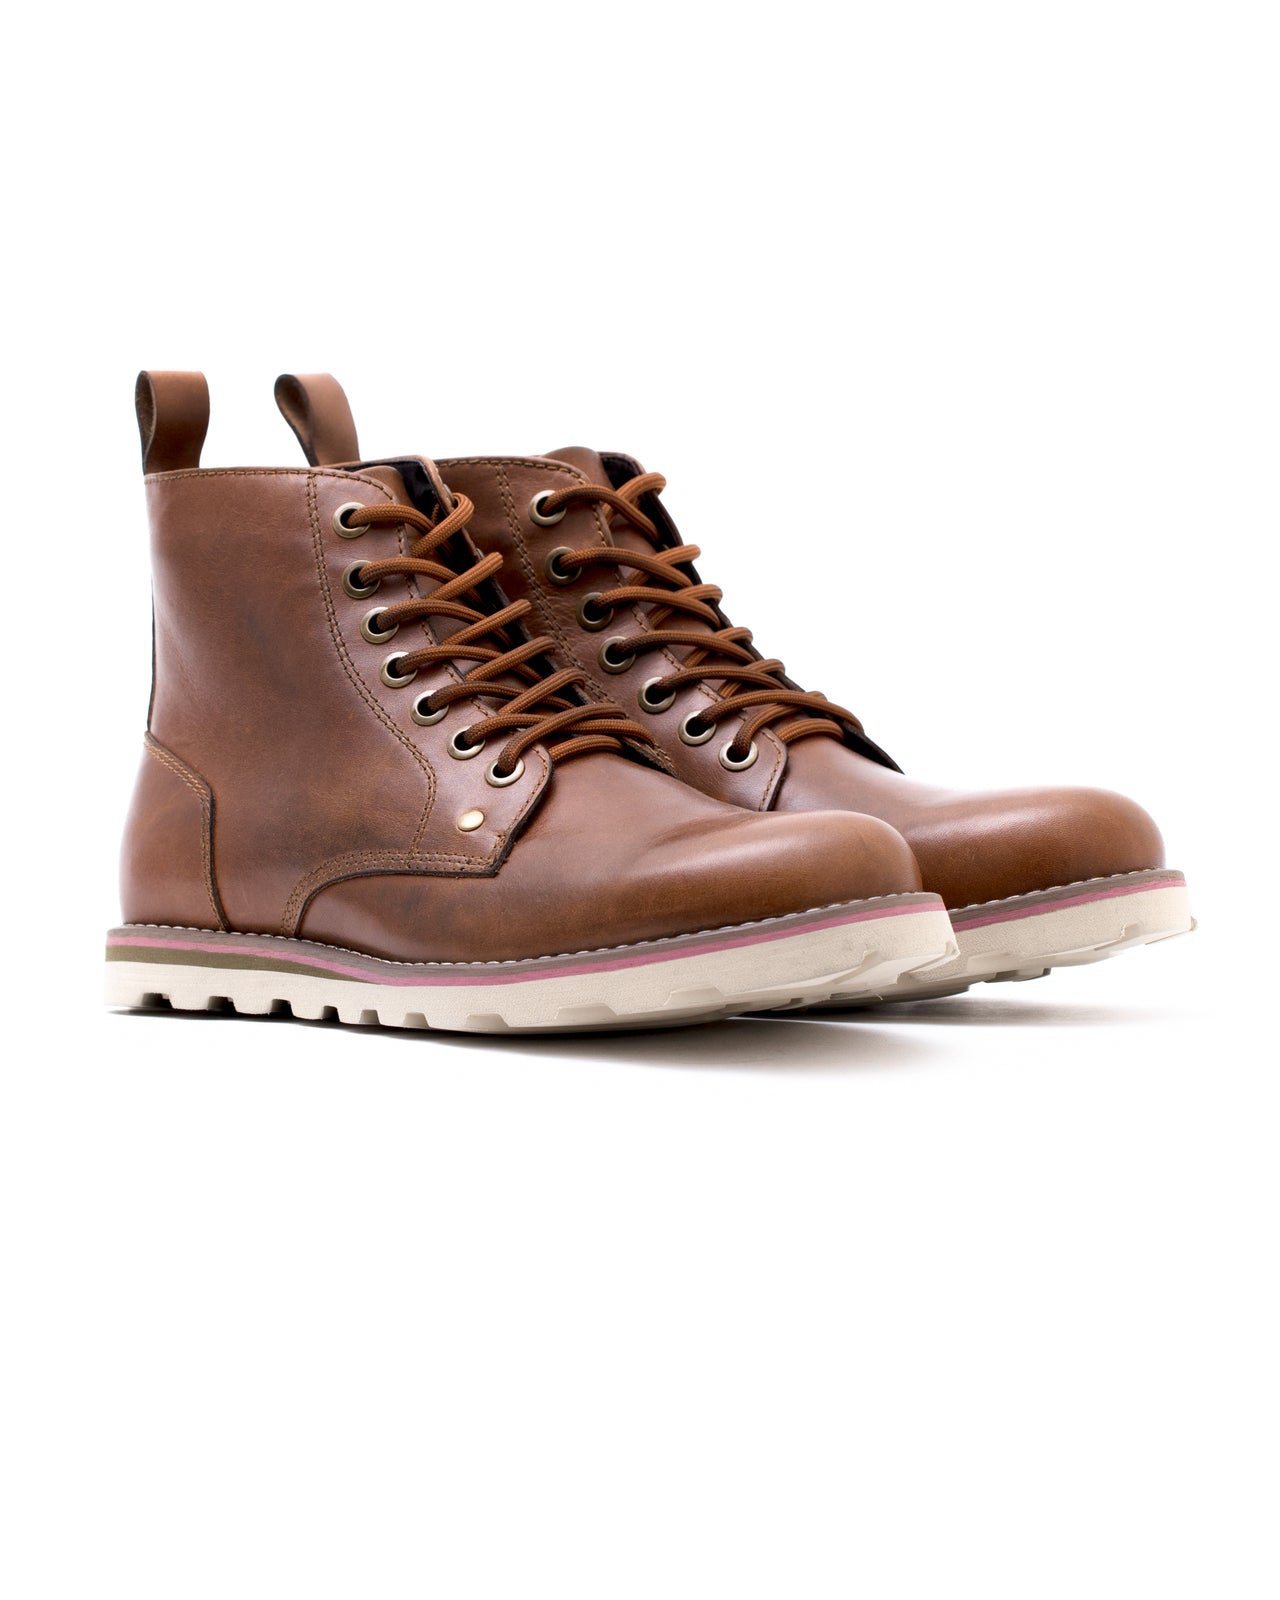 Work Boot - Color: Tan Leather | Brown